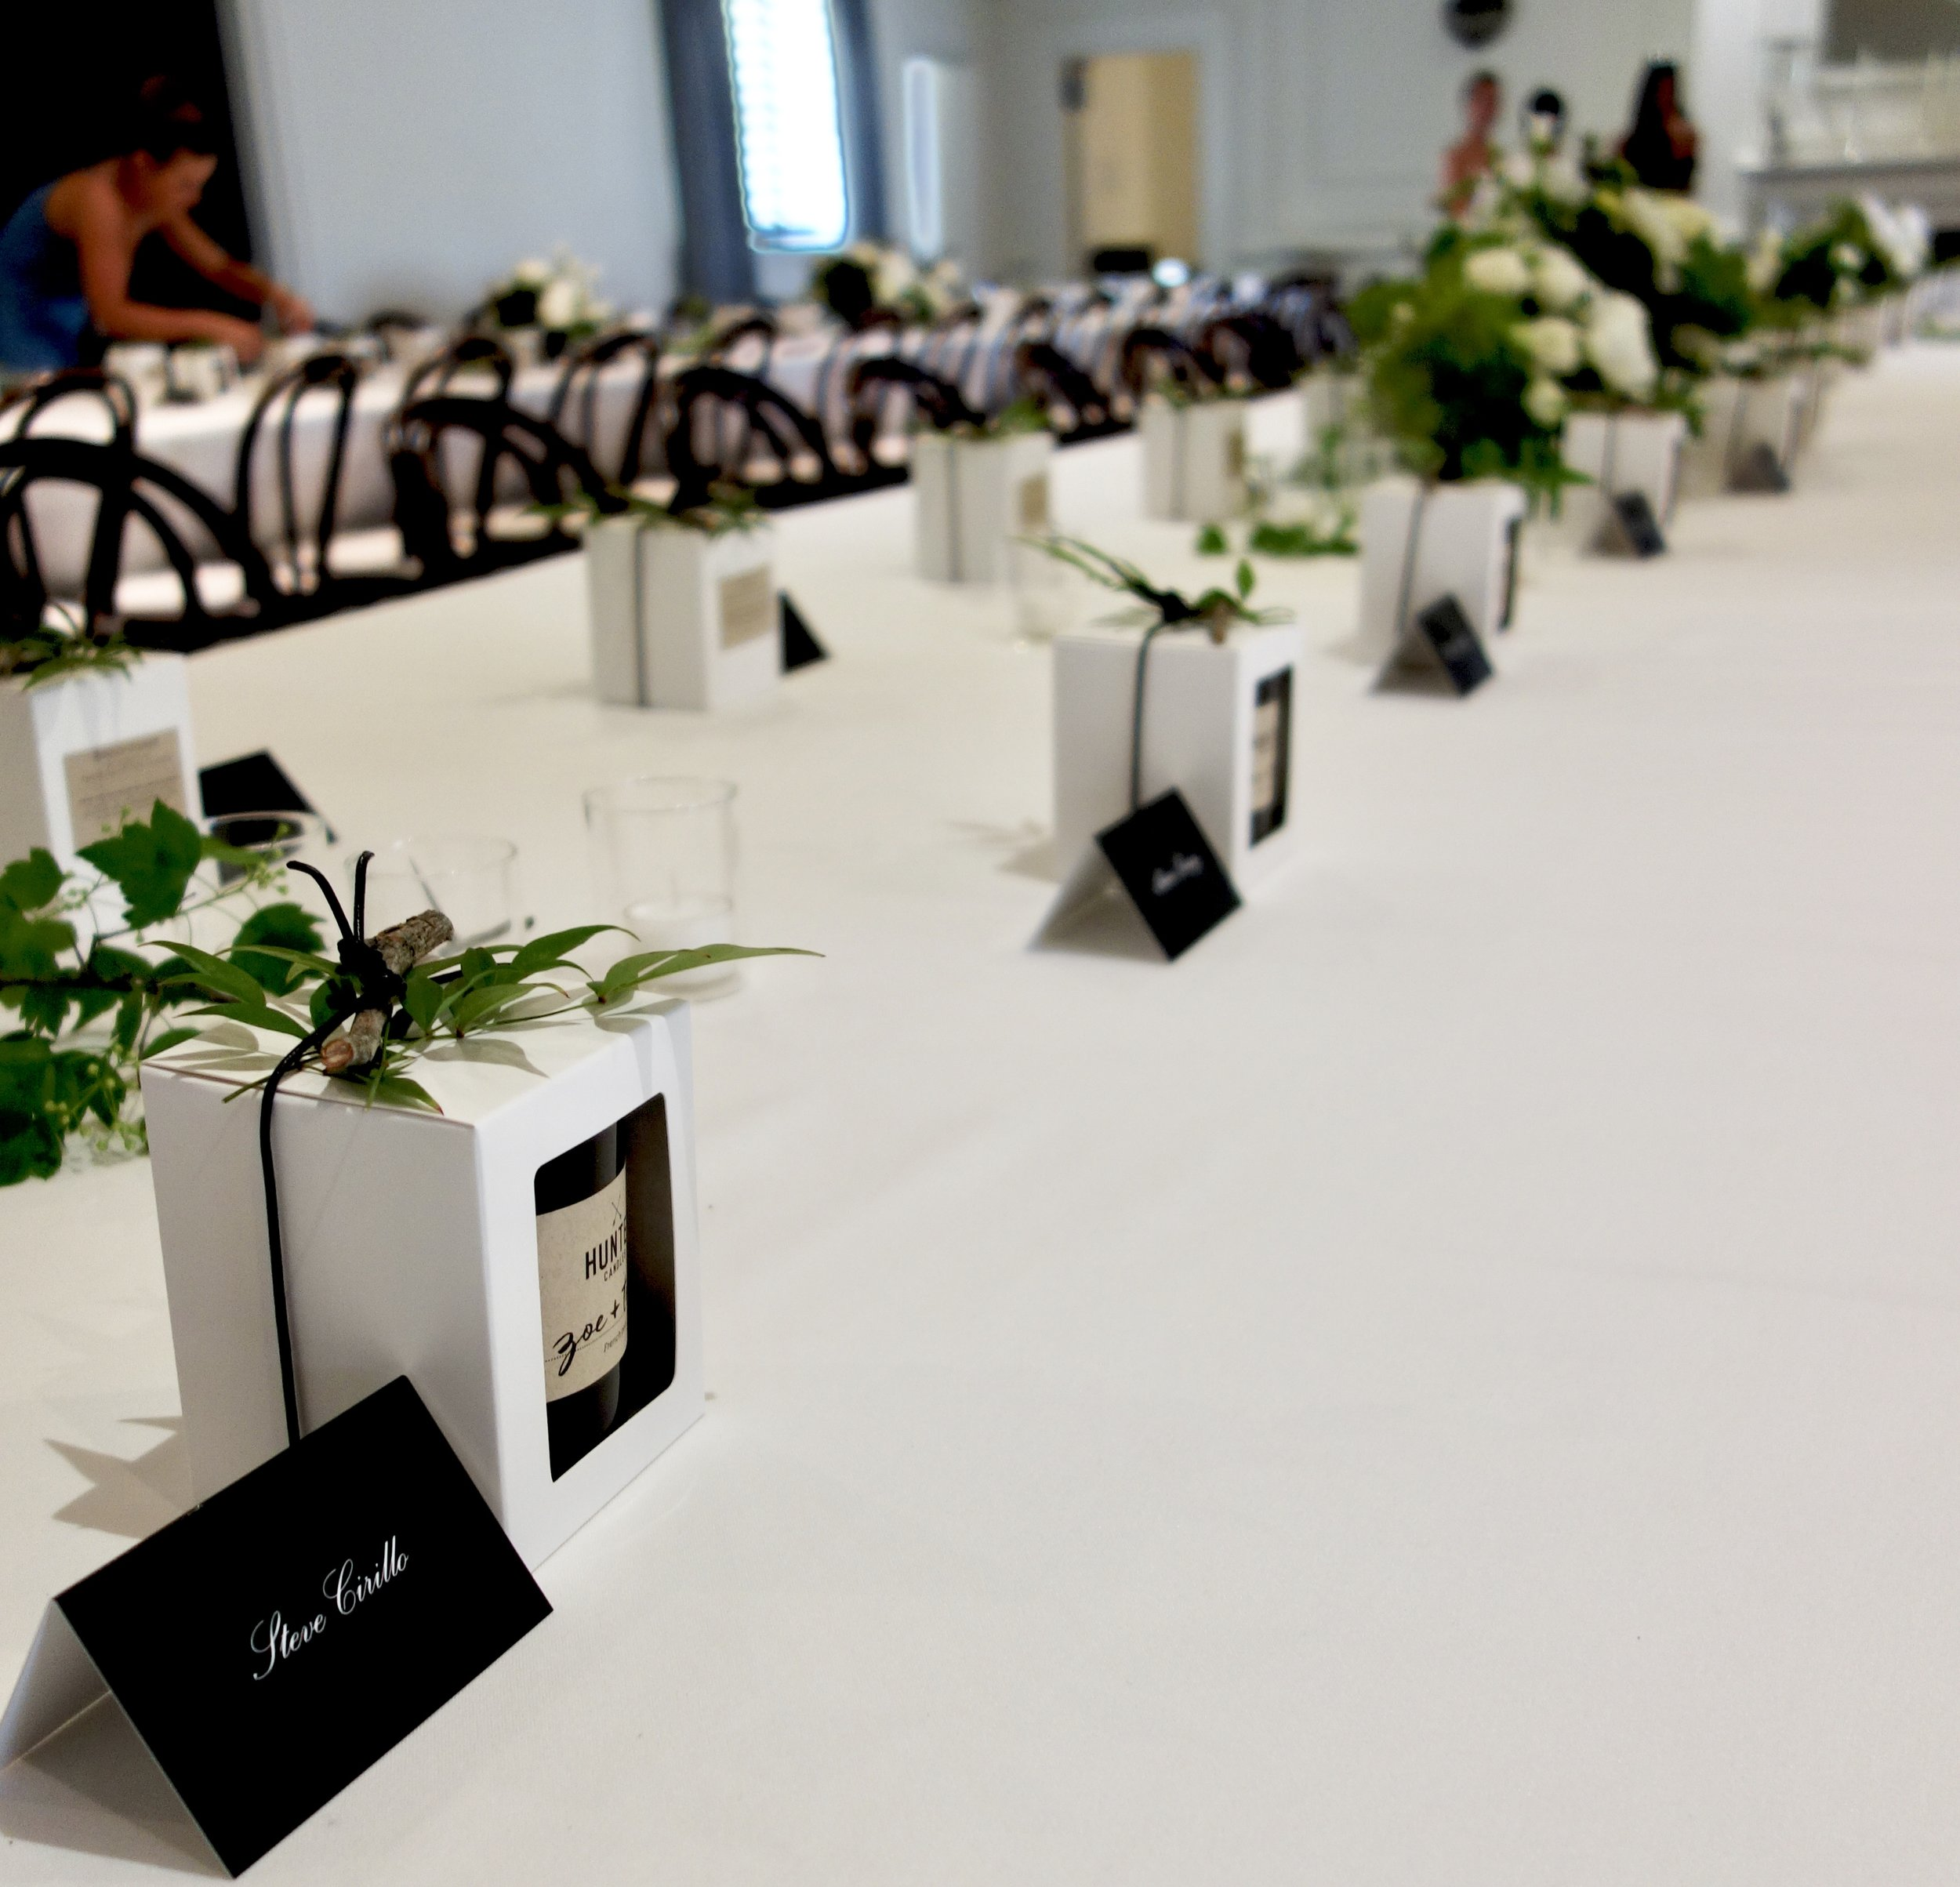 Table settings with Hunter Candles